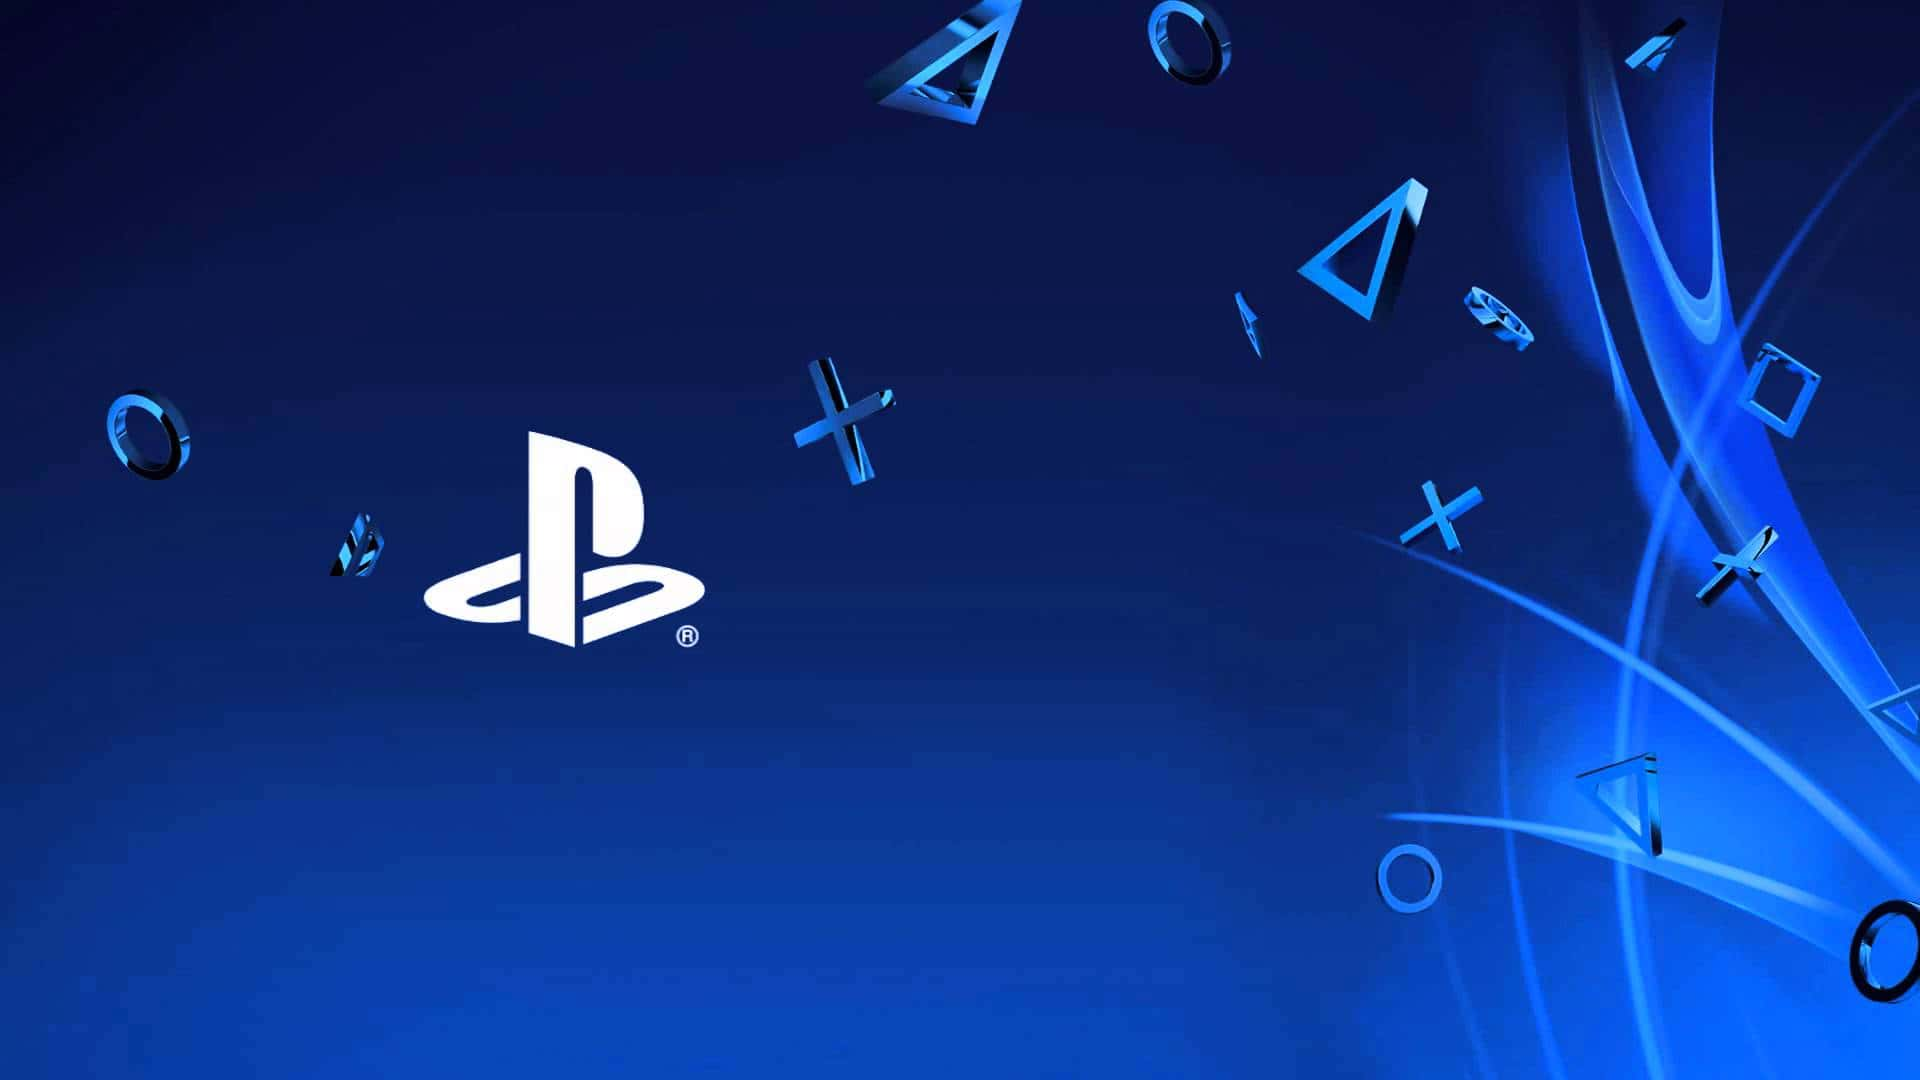 New PS4 Firmware Update 5.01 Out Now, Here's What it Brings